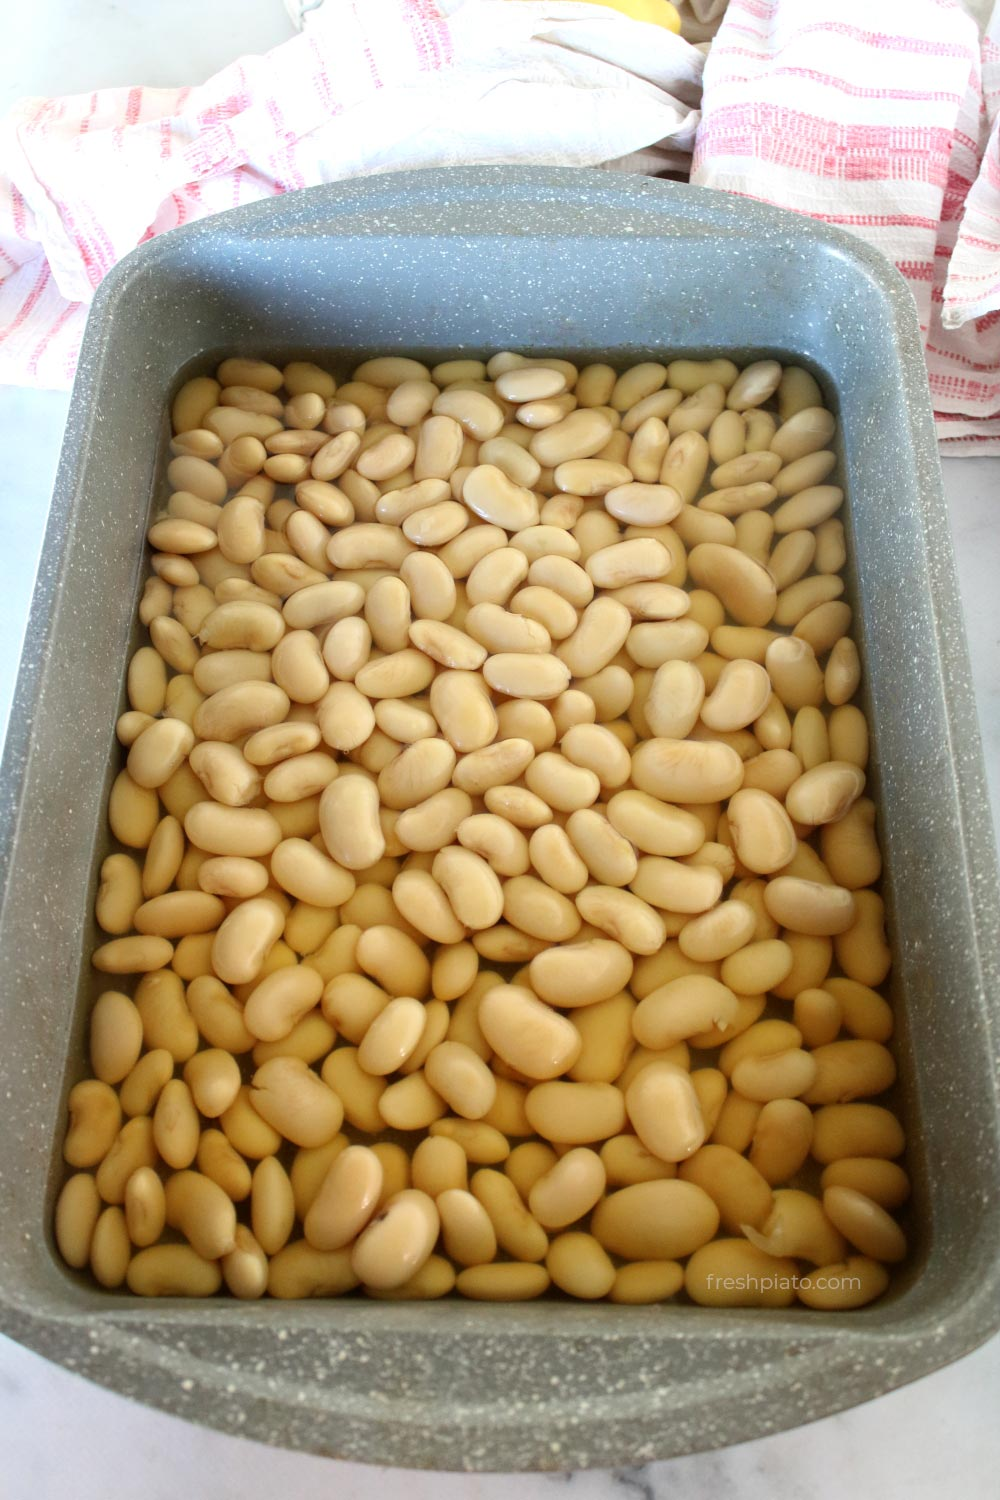 Lima beans boiled in a tray